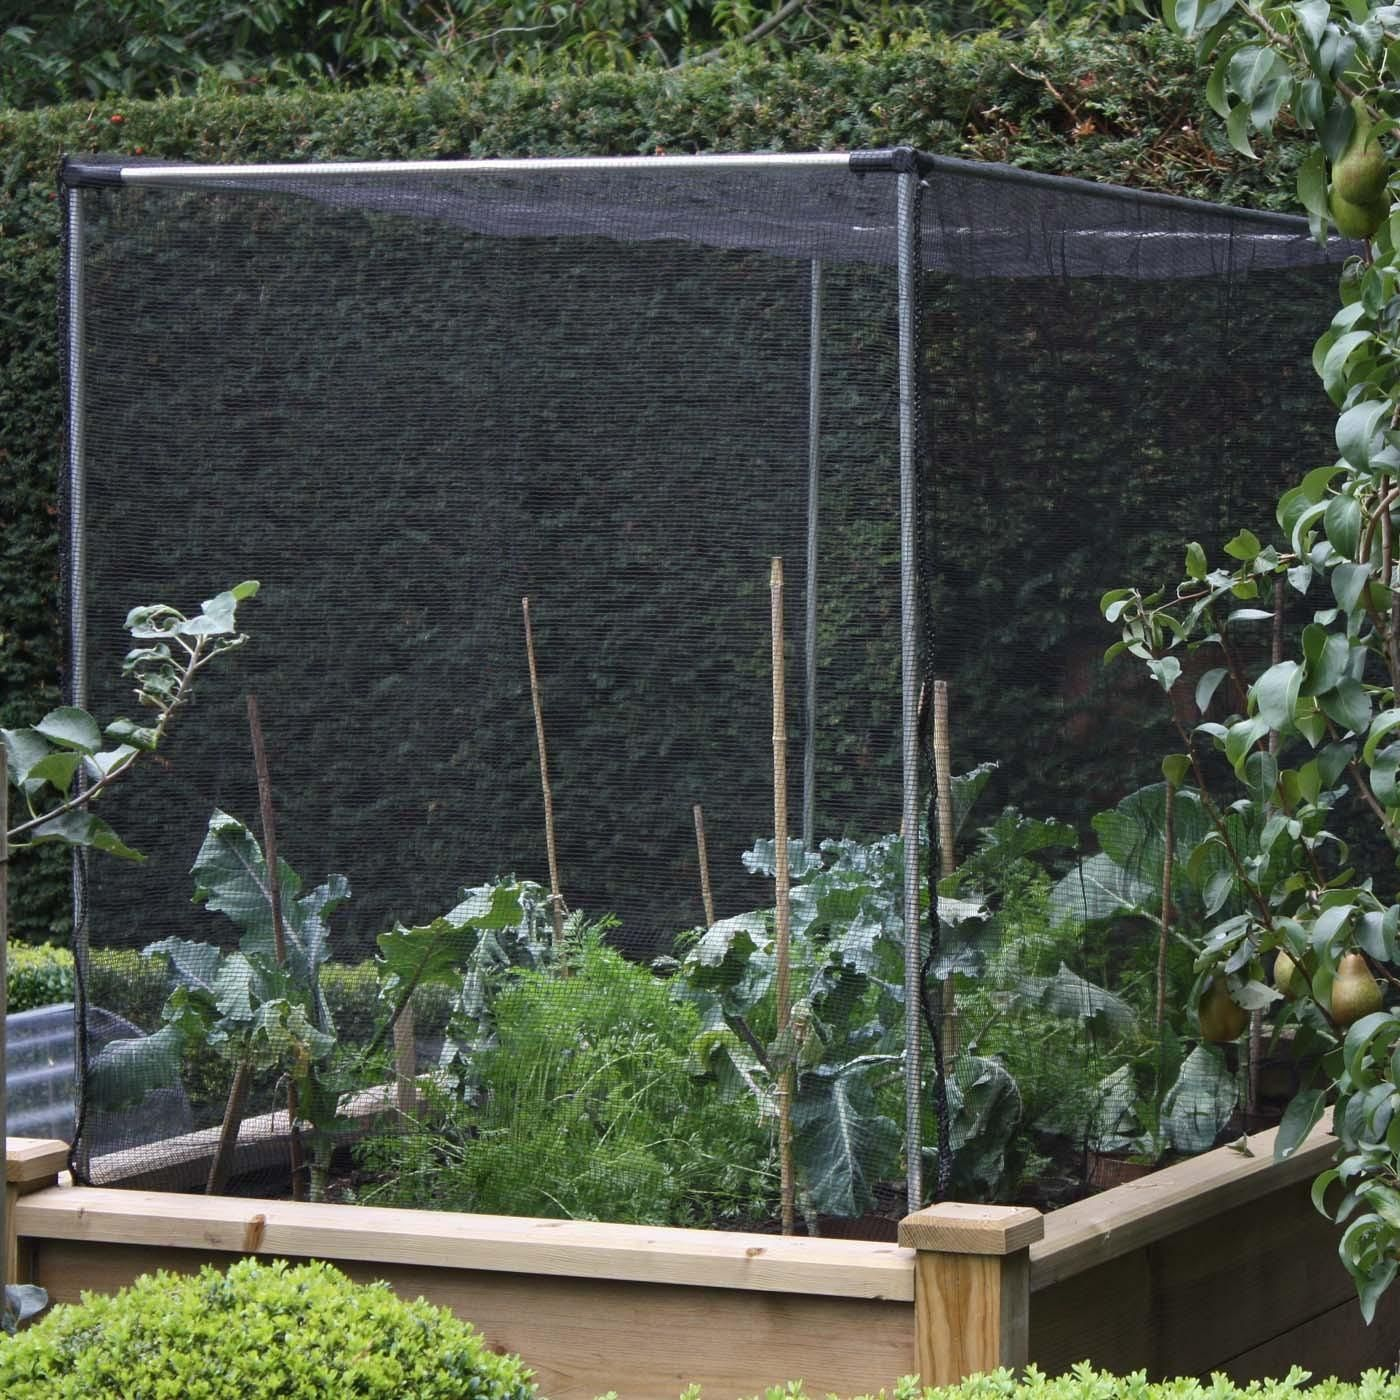 Garden Covers For Vegetables Part - 22: The Harrod Slot U0026 Lock® Aluminium Vegetable Cage Kits With Fitted Butterfly  Net Covers Save